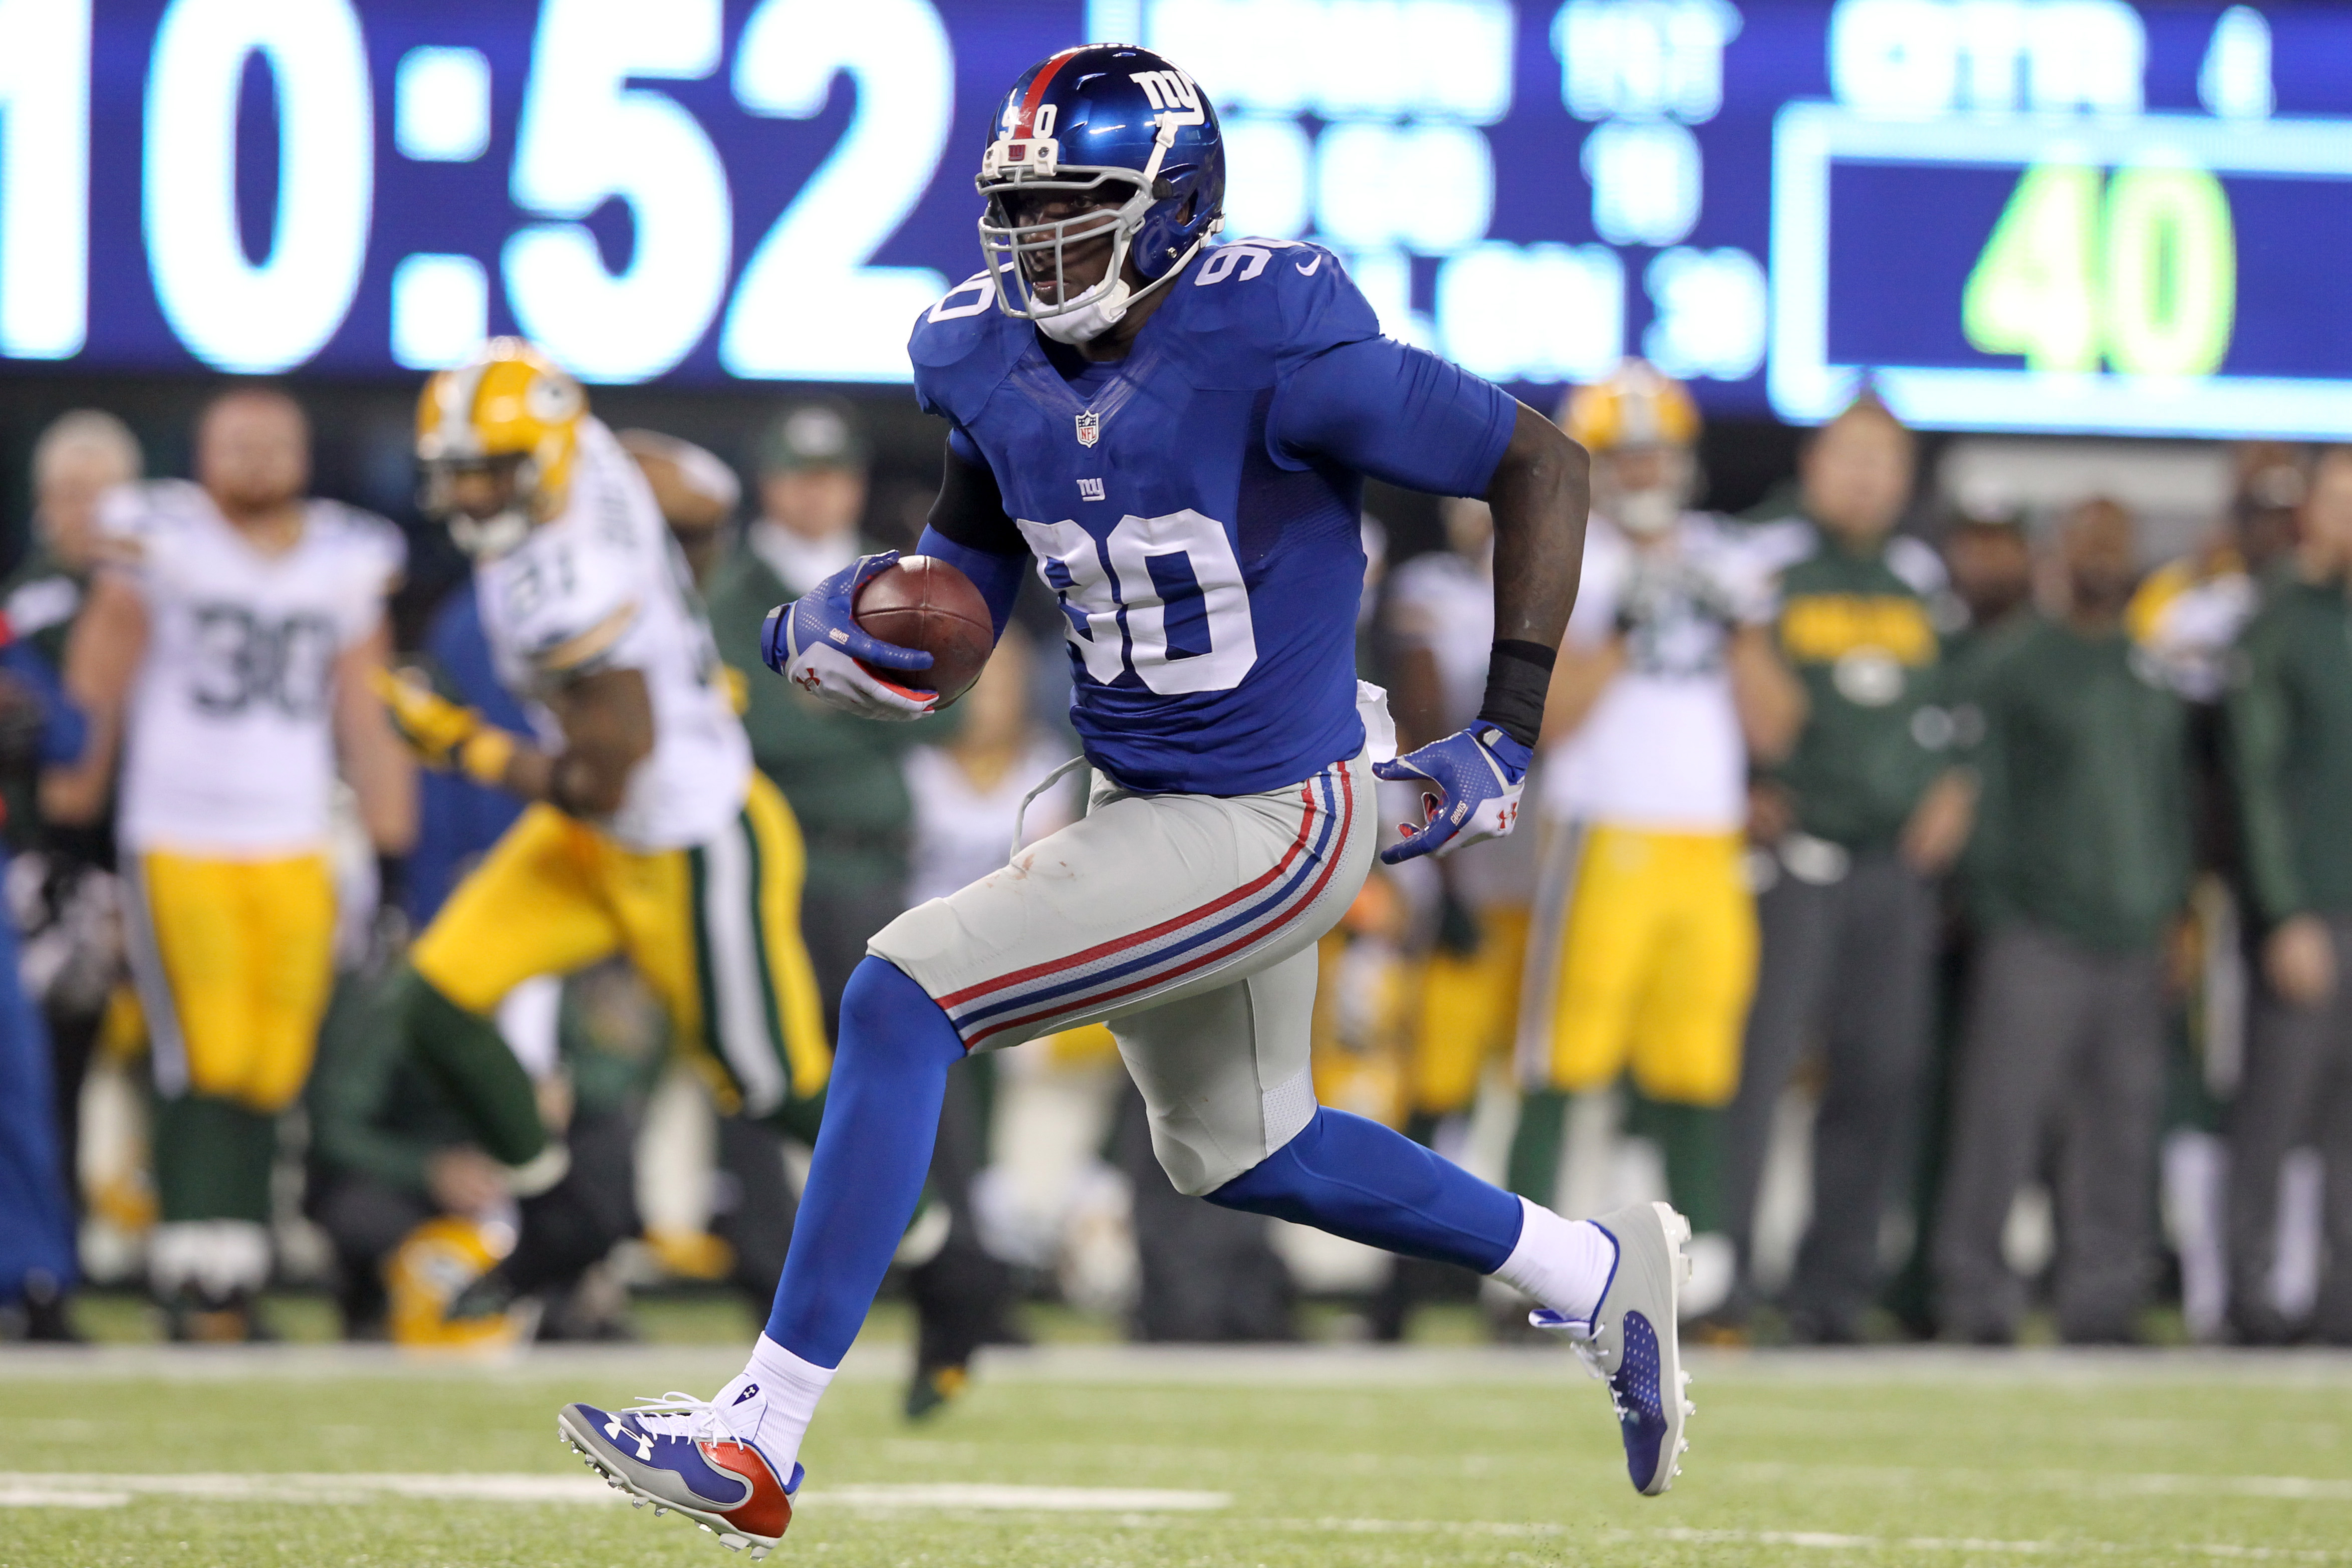 New York Giants defensive end Jason Pierre-Paul runs back an interception against the Green Bay Packers for a touchdown during the fourth quarter of a game at MetLife Stadium on November 17, 2013.